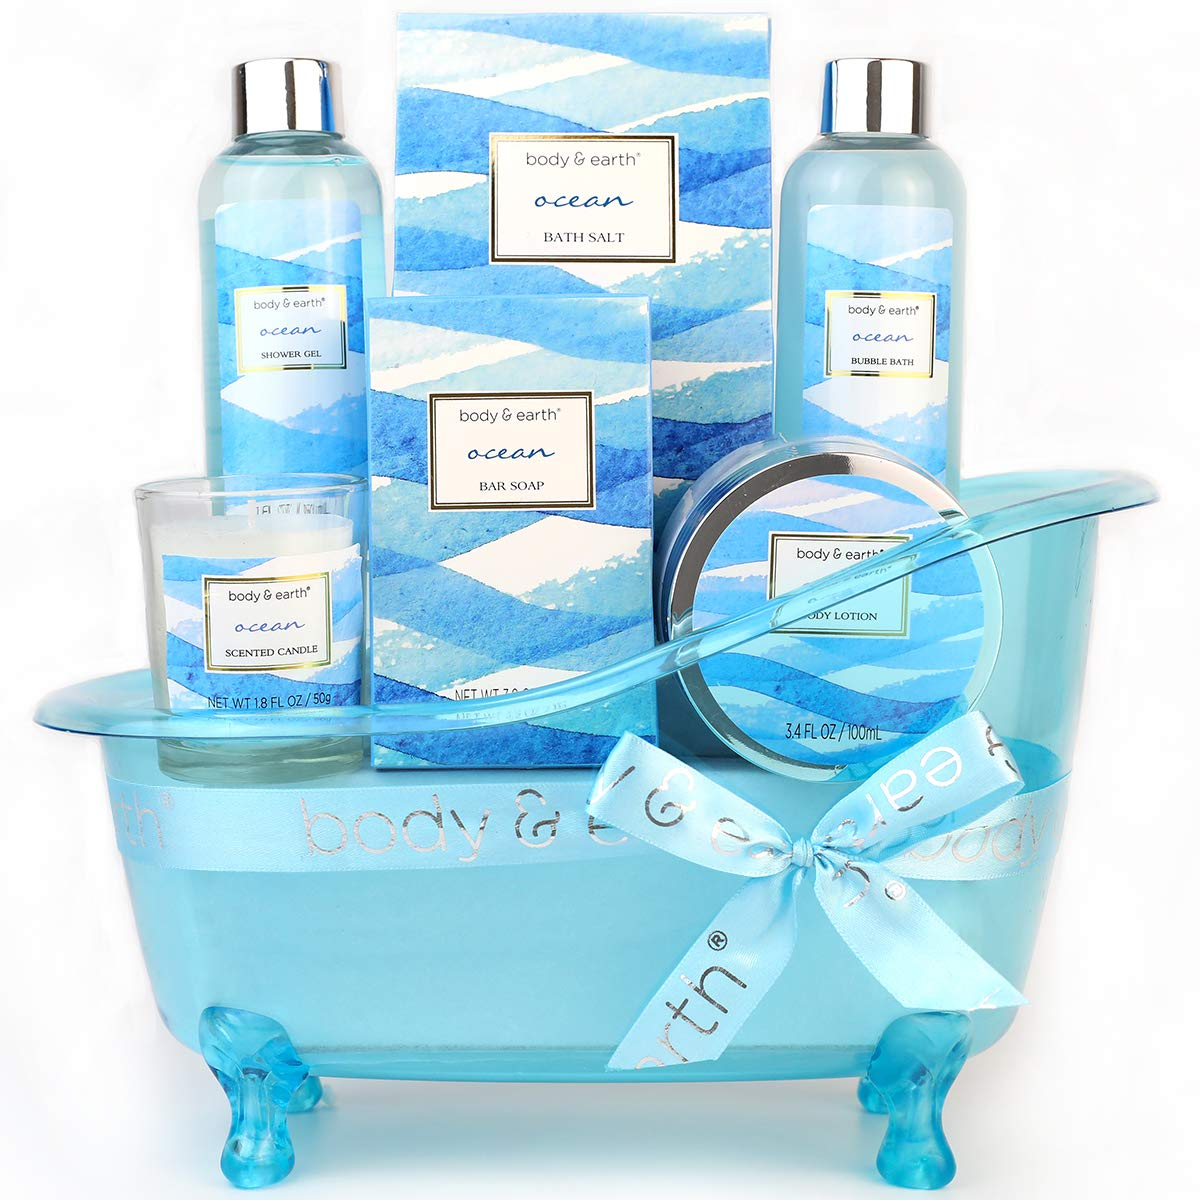 Bath Gift Set for Women, Body & Earth Home Spa Kit Scented with Ocean, Bath and Body Gift Basket Set, Spa Gifts for Women, 7 Pcs Bath Set, Best Gift Ideal for Her : Beauty